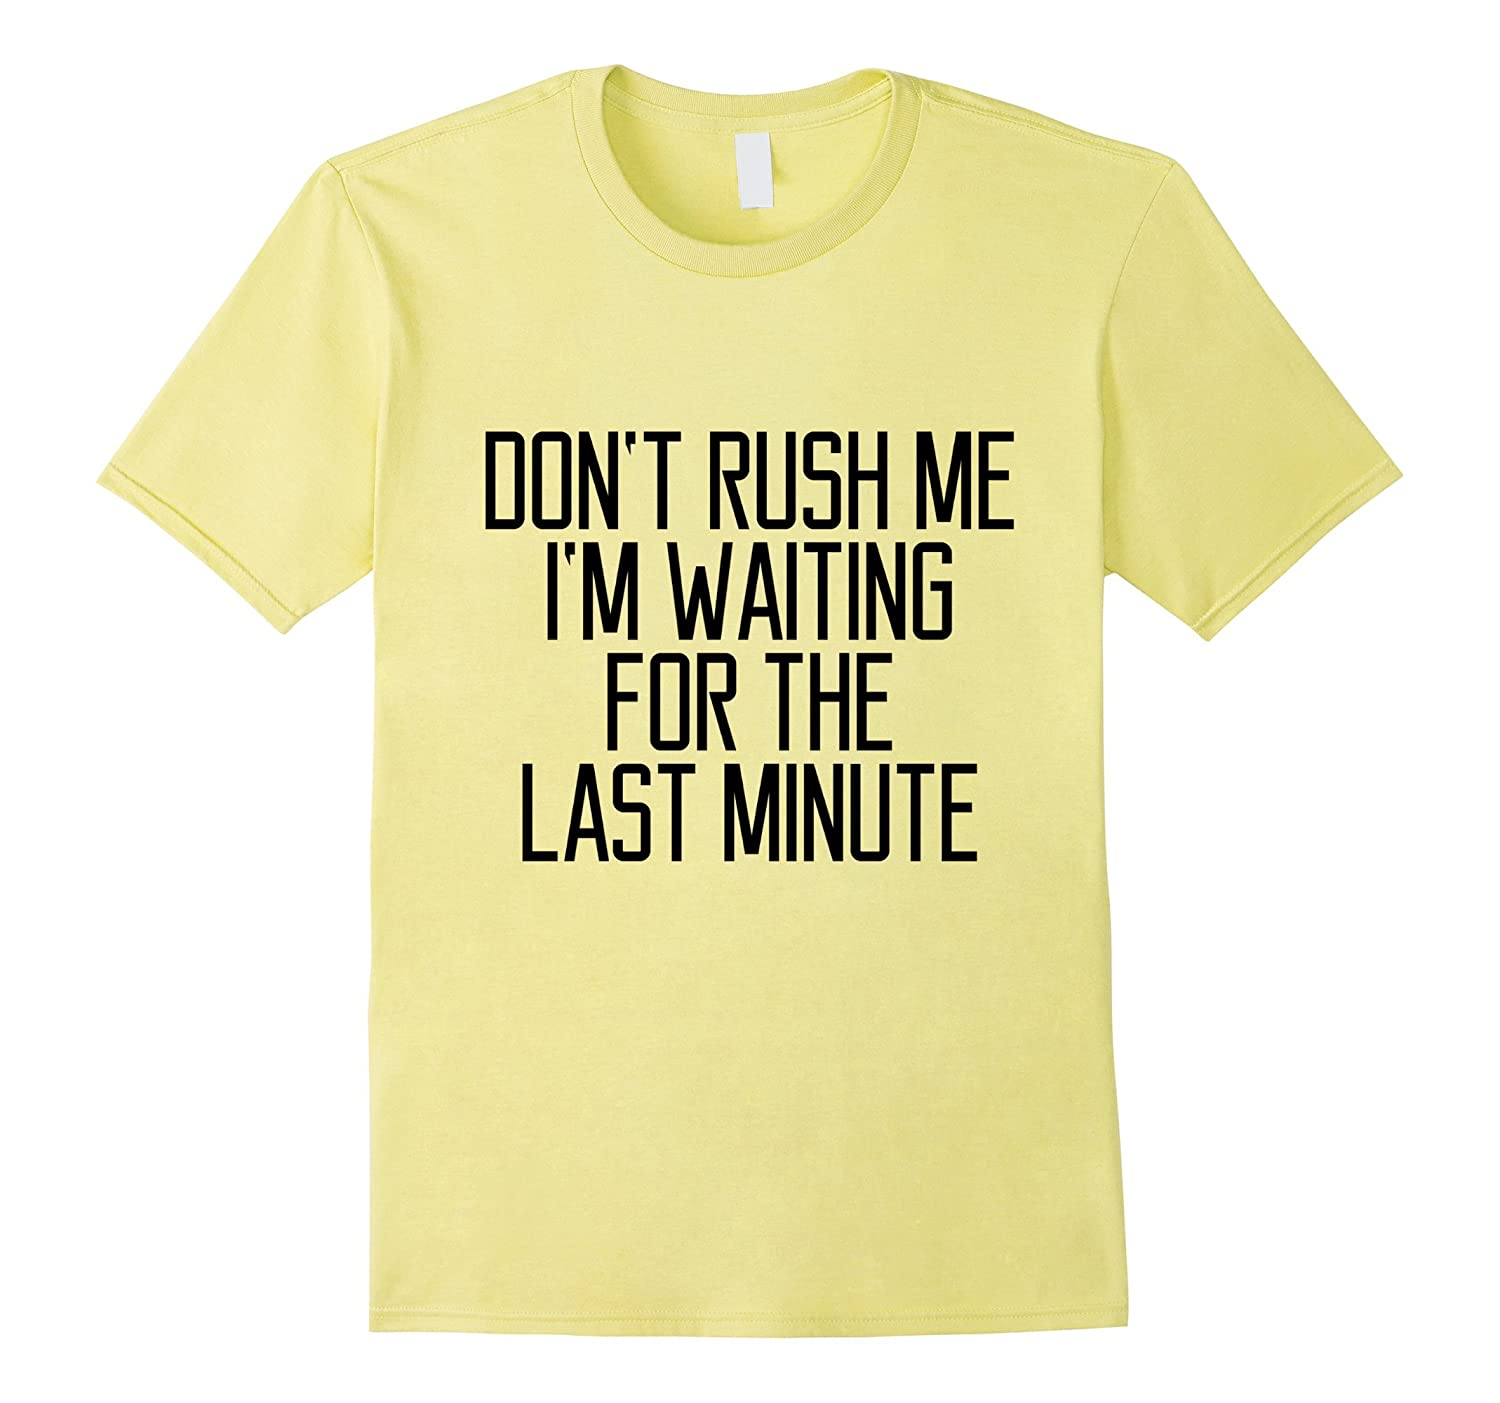 Don't Rush Me I'm Waiting For The Last Minute Saying T-shirt